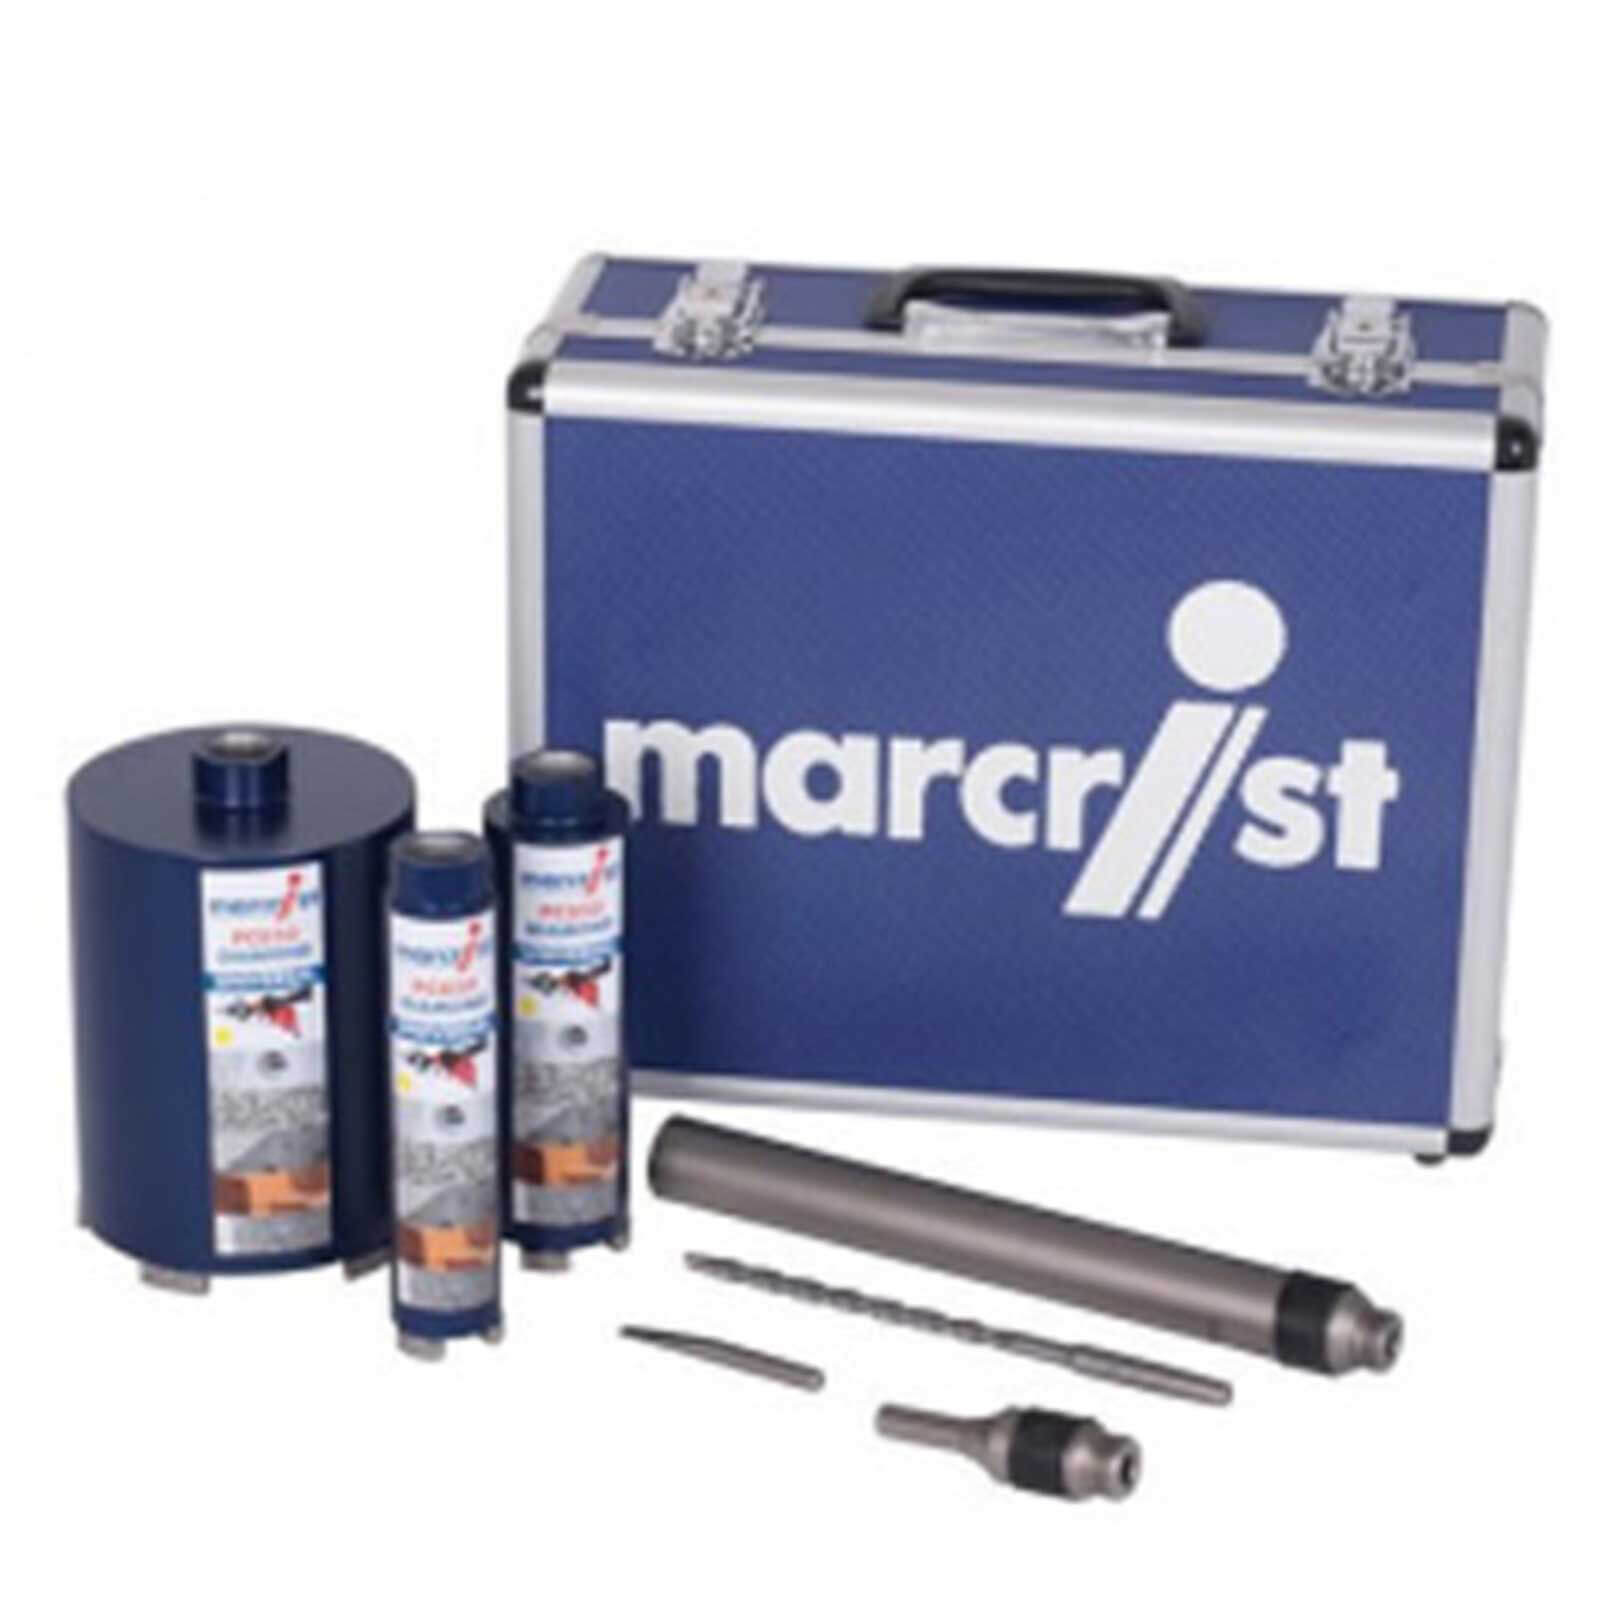 Image of Marcrist PC850 3 Piece Diamond Core Set